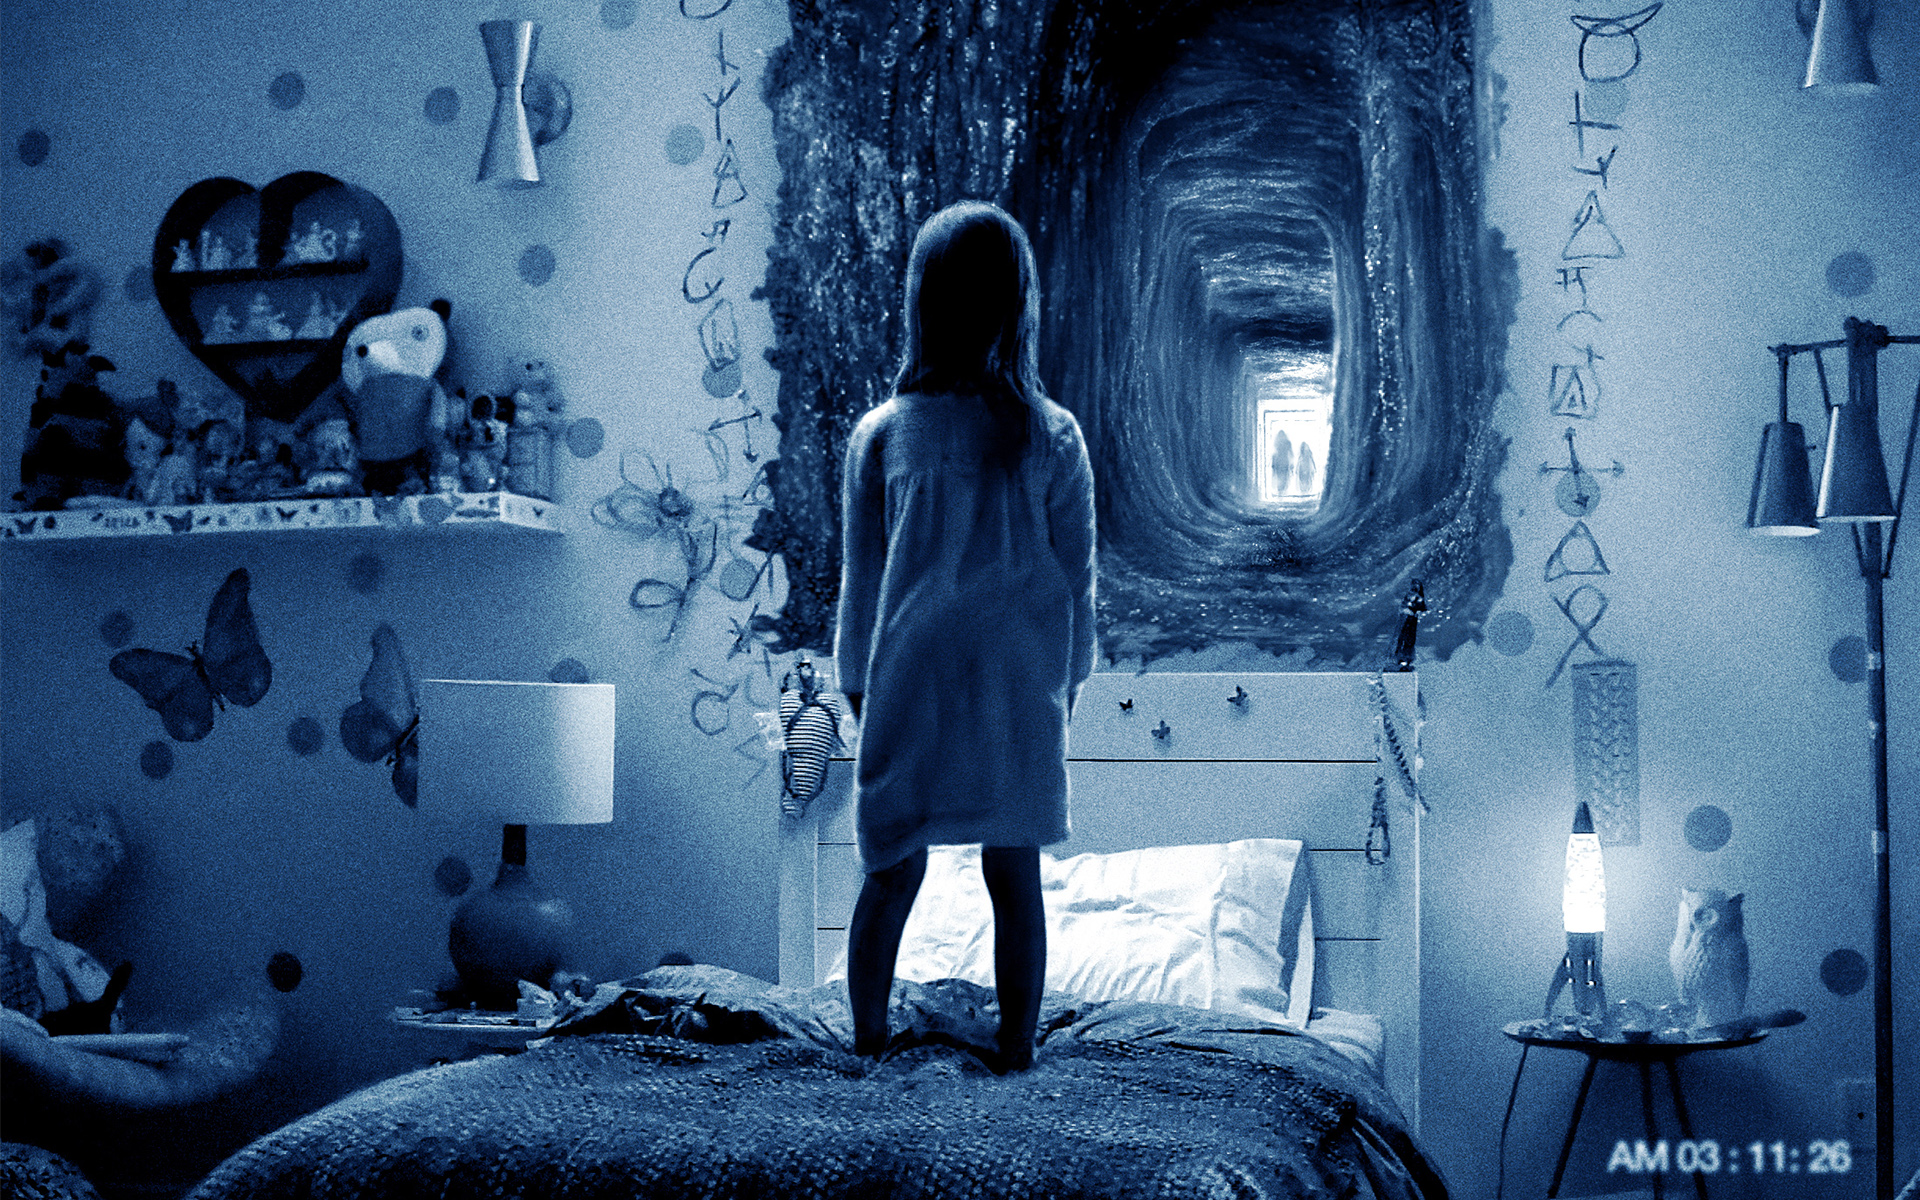 Lammerda – Paranormal Activity: The Ghost Dimension